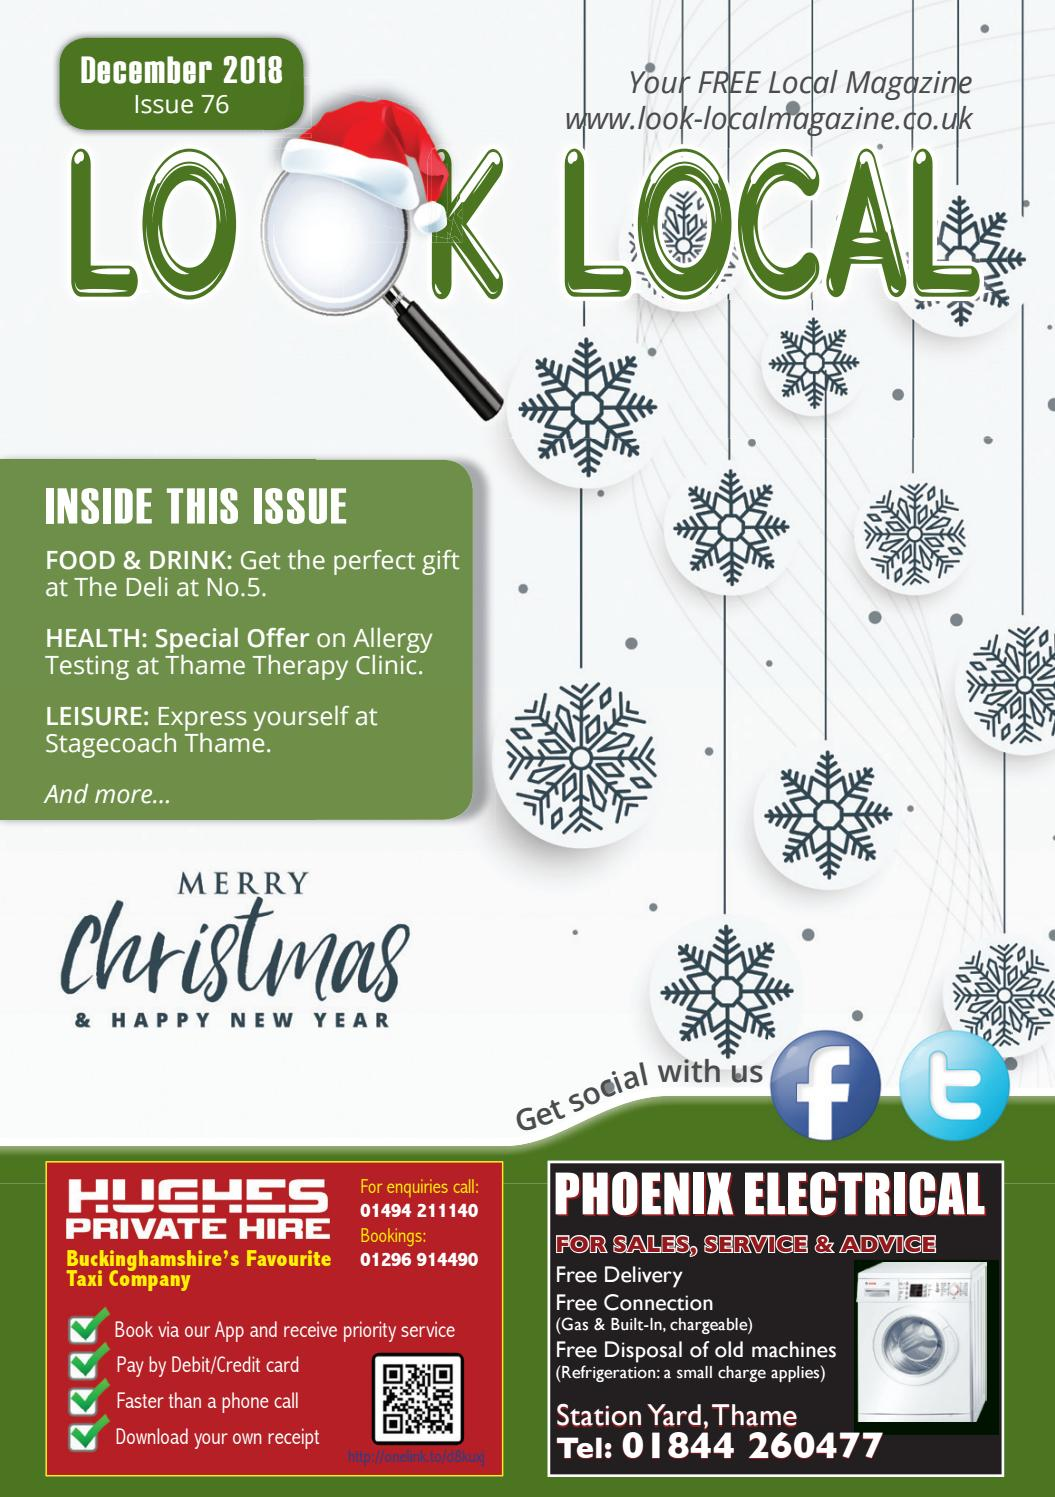 Look Local Magazine, December 2018 Edition, Issue 76 by Look